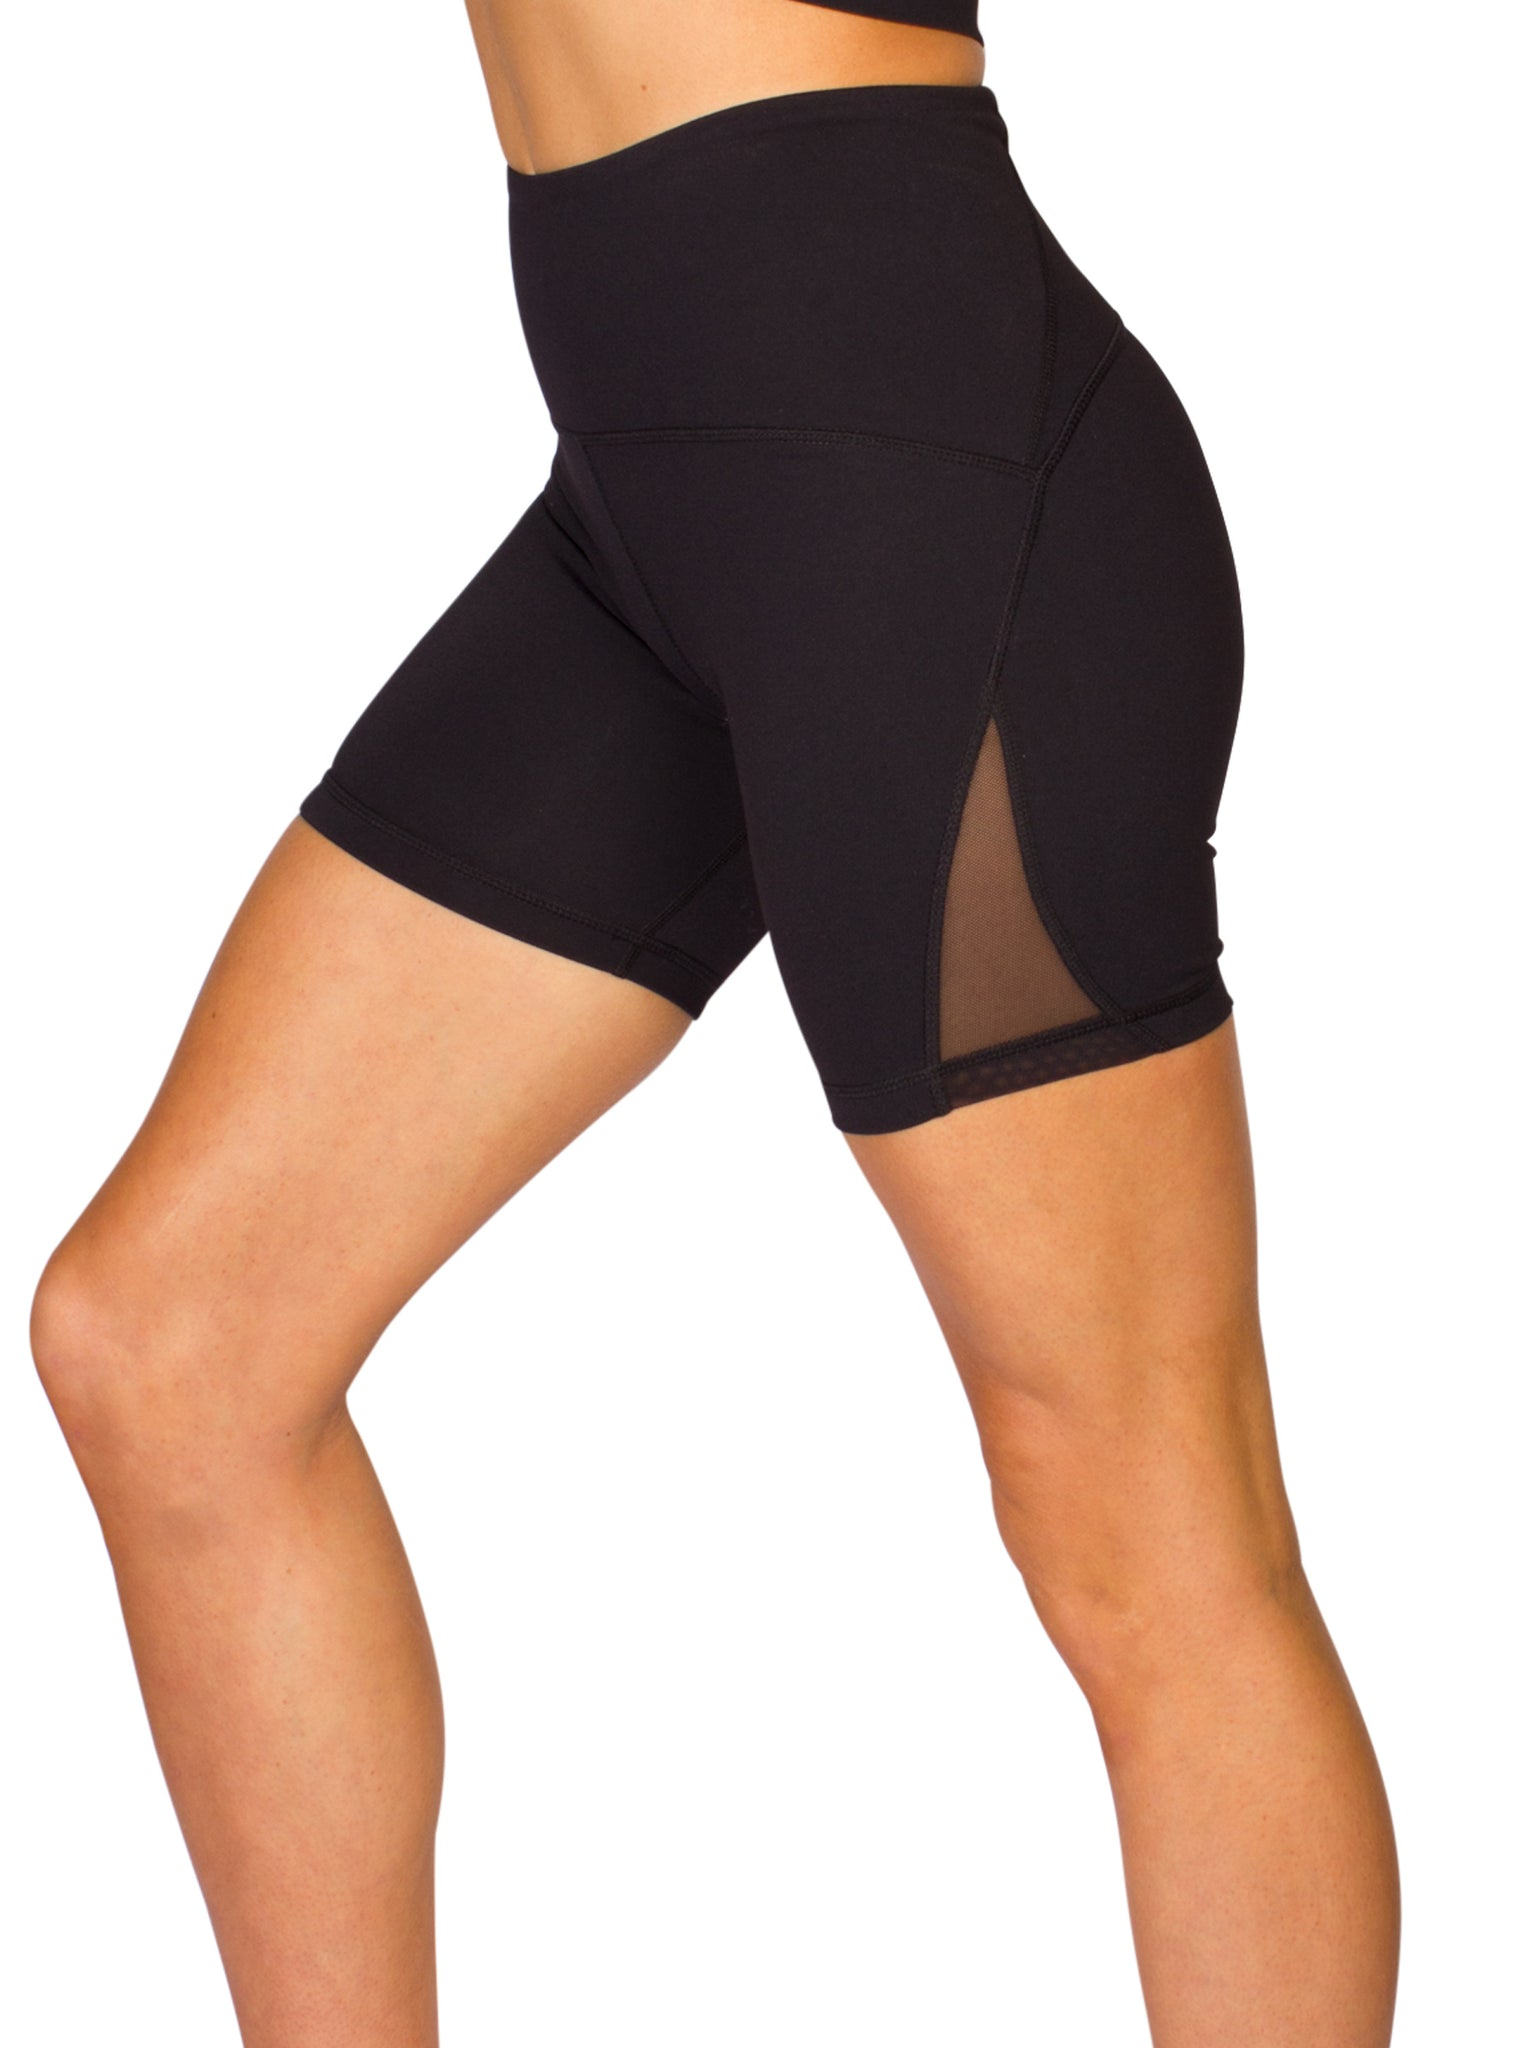 HIGH-RISE MESH CUT OUT POCKETED SHORTS - BLACK